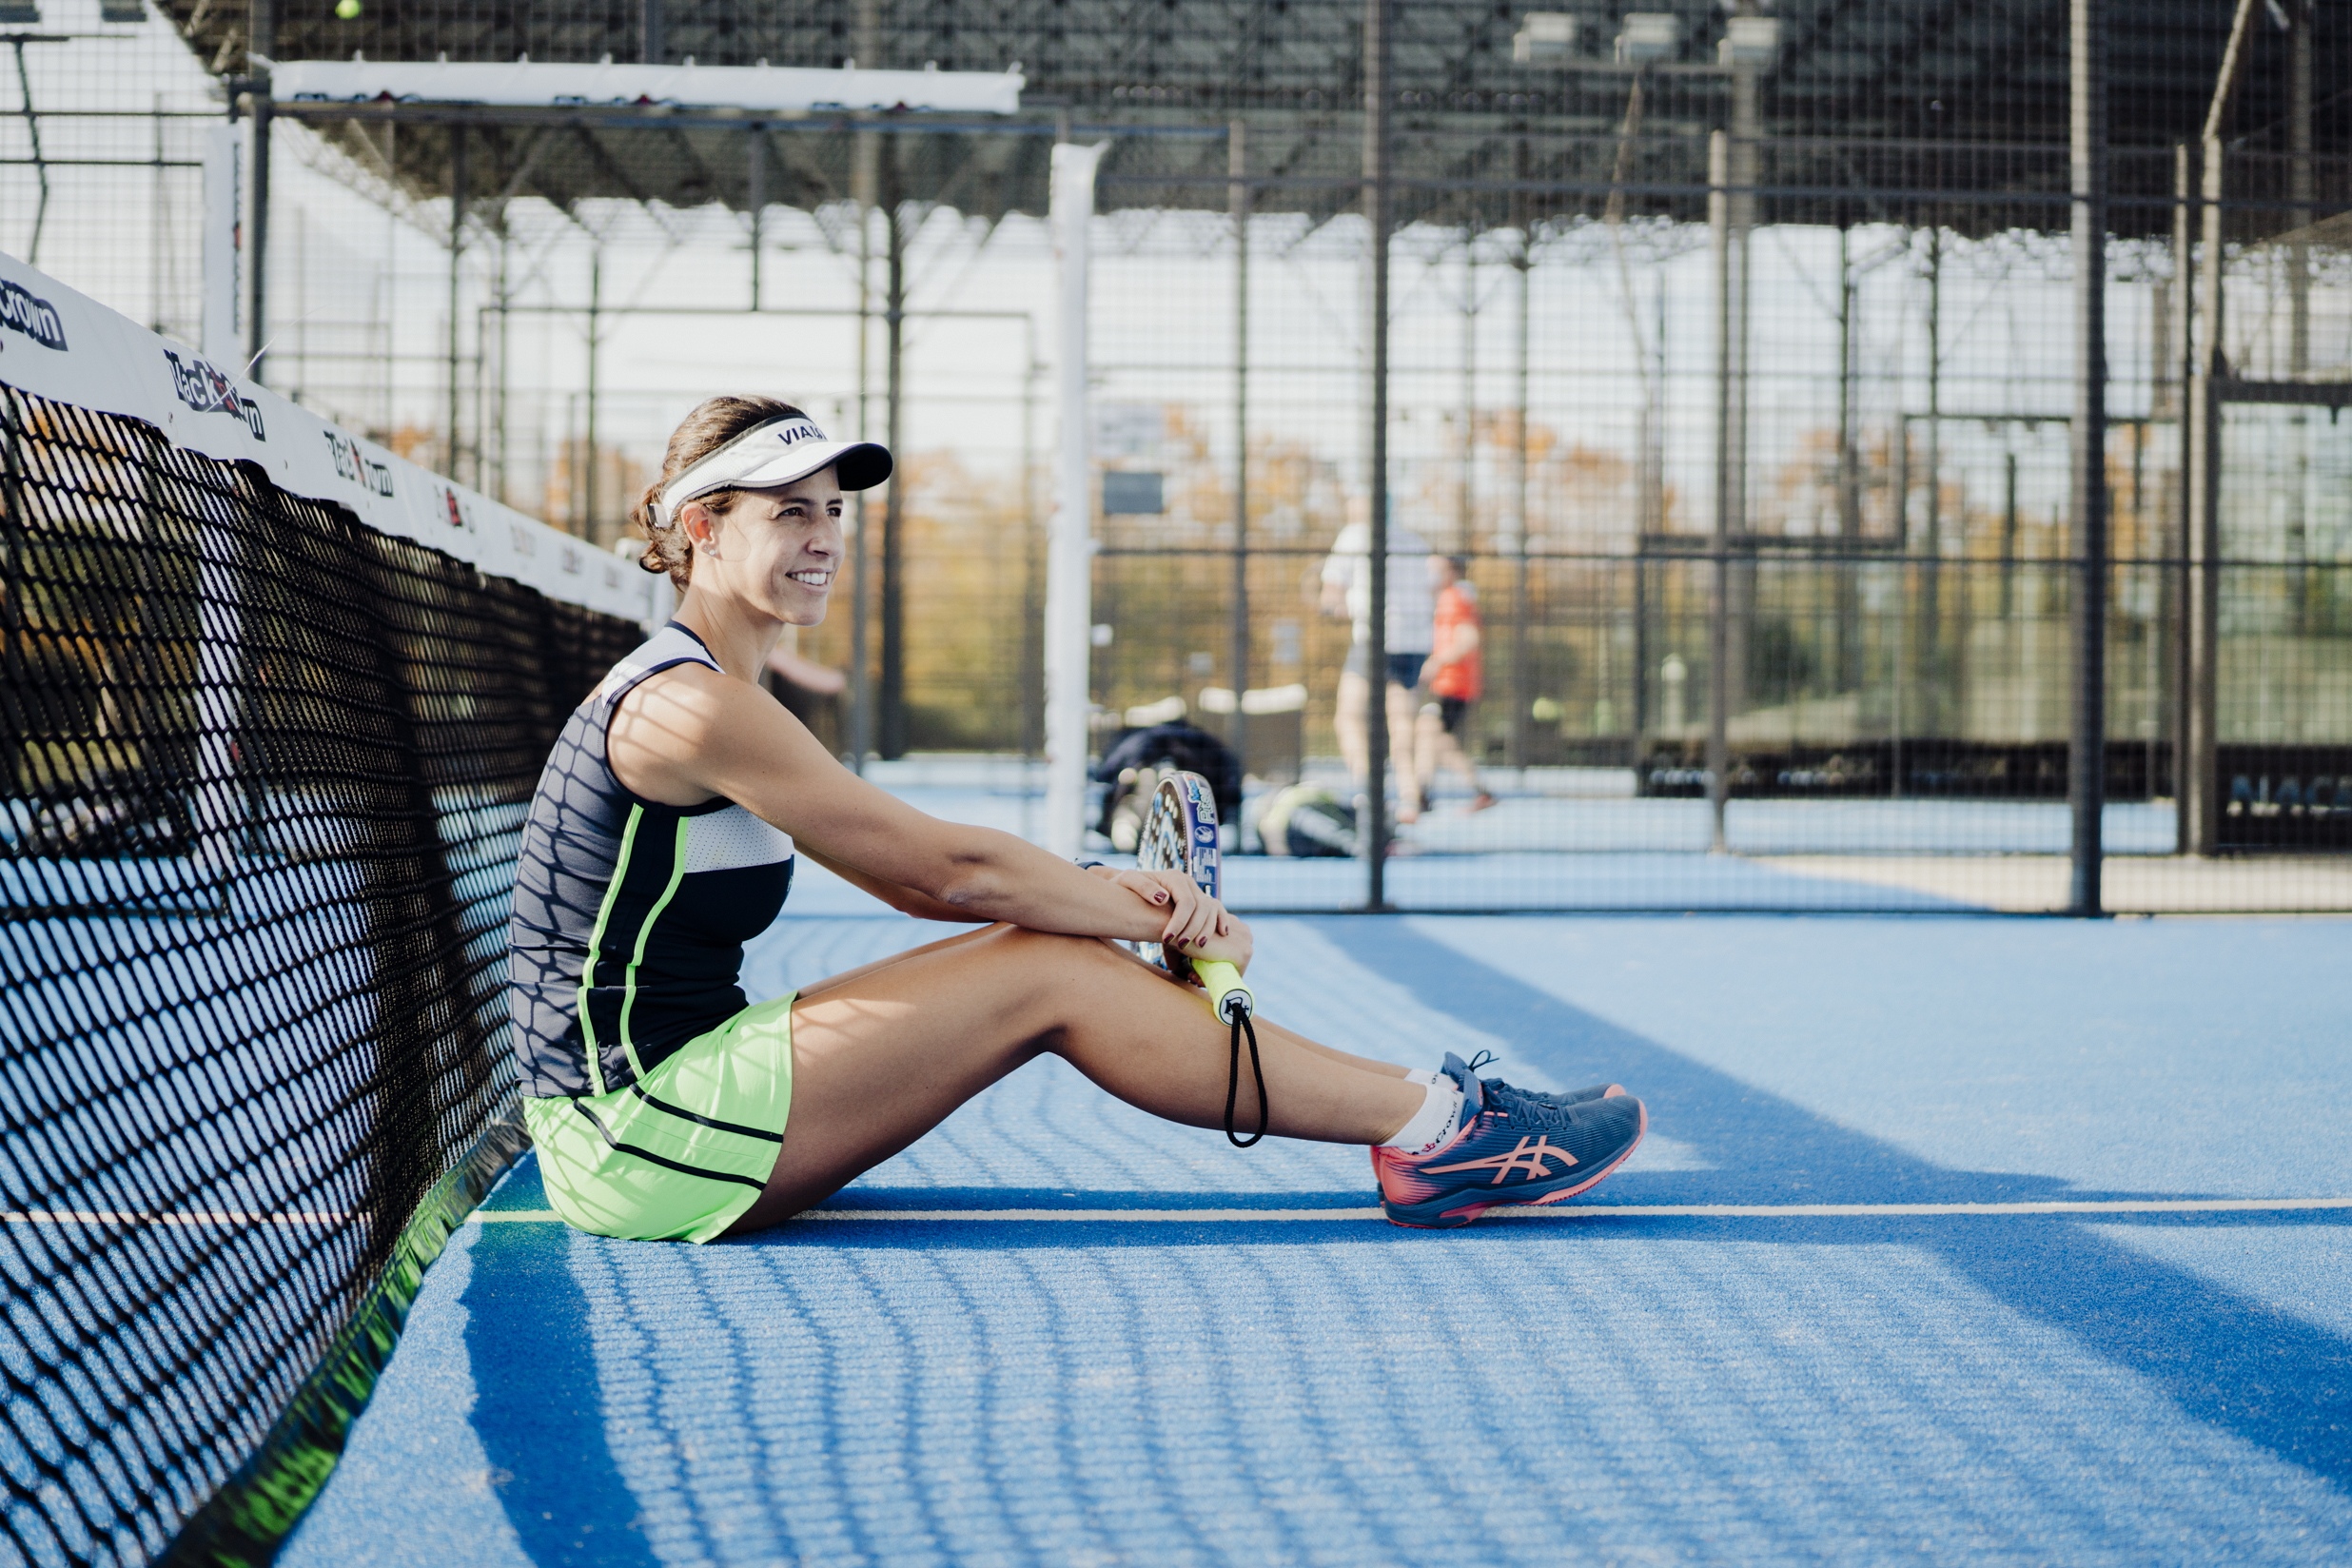 Marta Marrero joins Tennium family